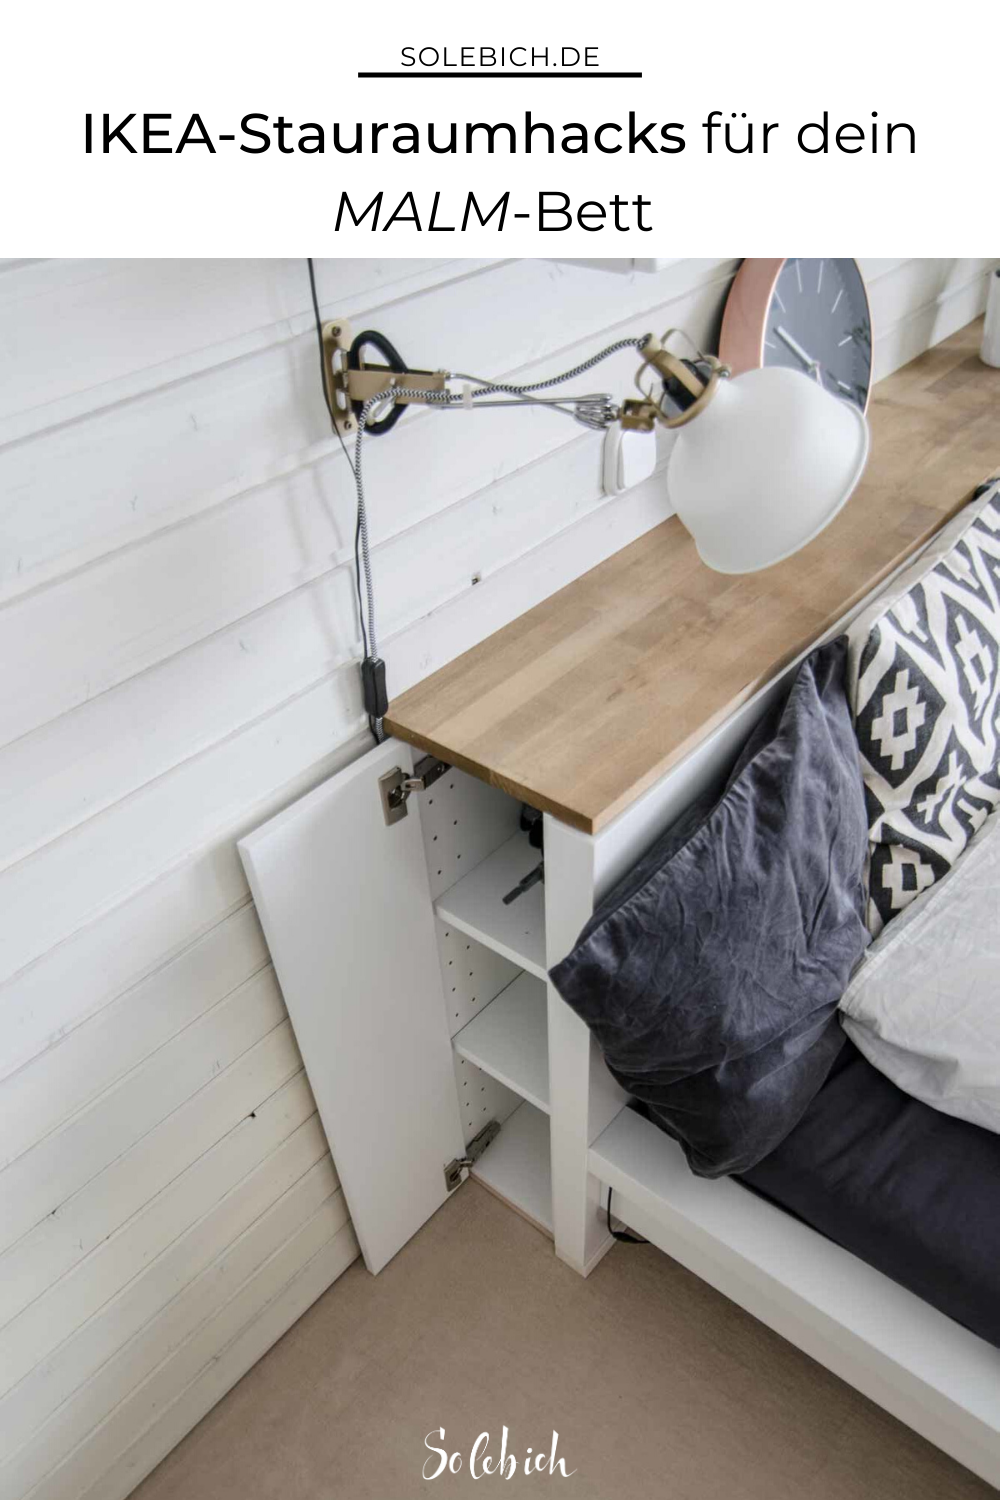 6 Ikea Stauraum Hacks Fur Mehr Stauraum Im Schlafzimmer Fur Das Malm Bett 6 Ikea Storage Hacks For More Storage Space I In 2020 Ikea Storage Bed Ikea Ikea Hack